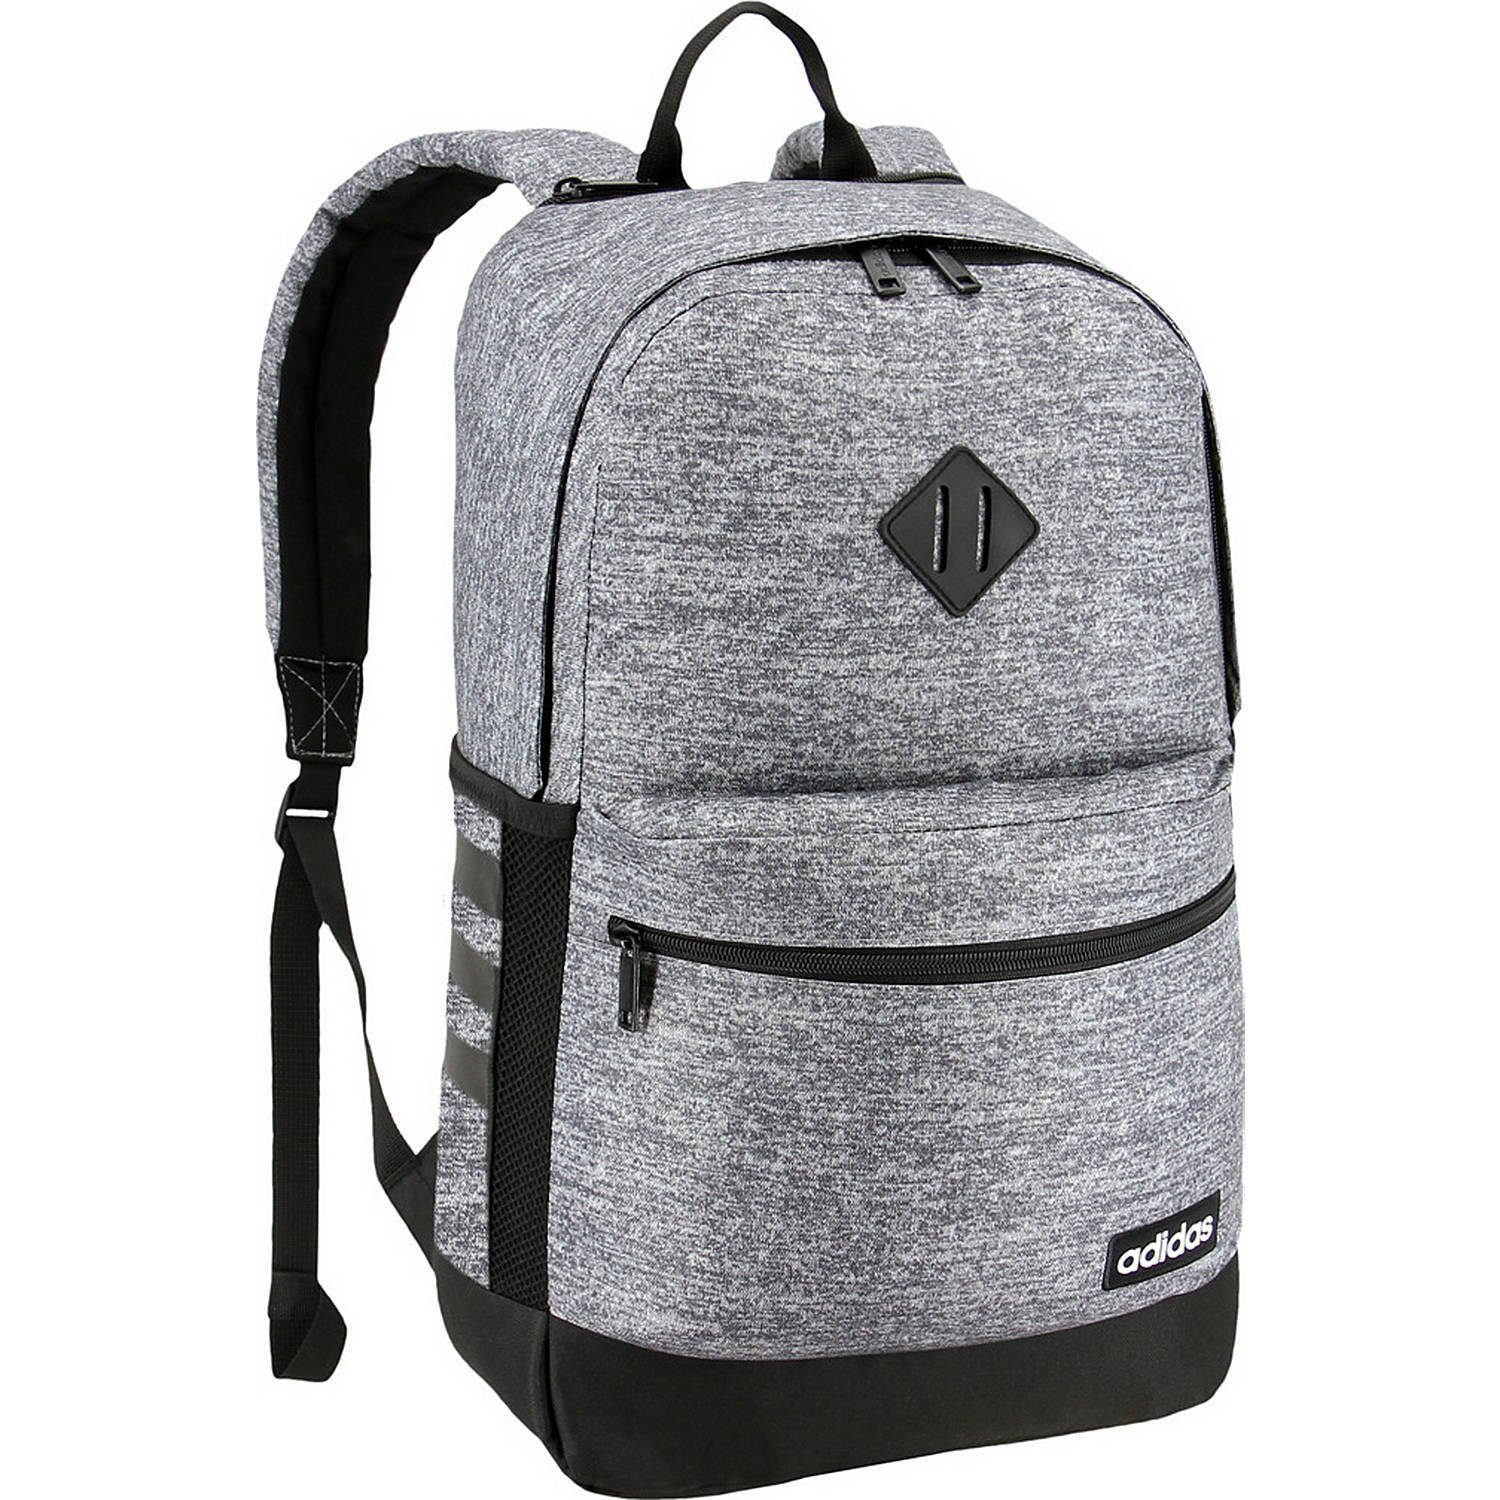 adidas Classic 3S II Backpack Black One Size Agron Inc (adidas Bags) 976548